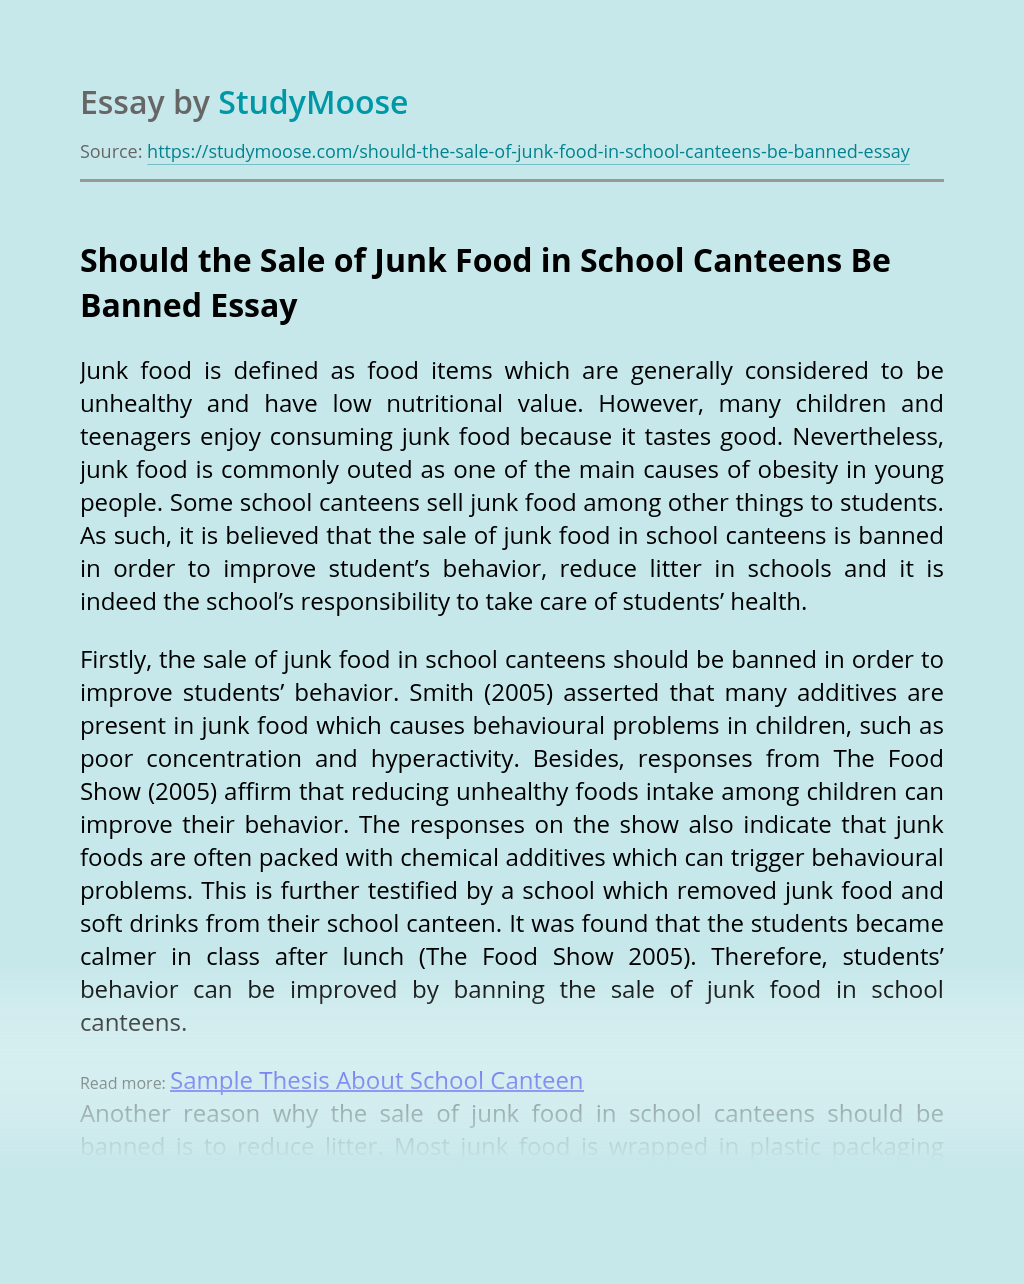 Should the Sale of Junk Food in School Canteens Be Banned